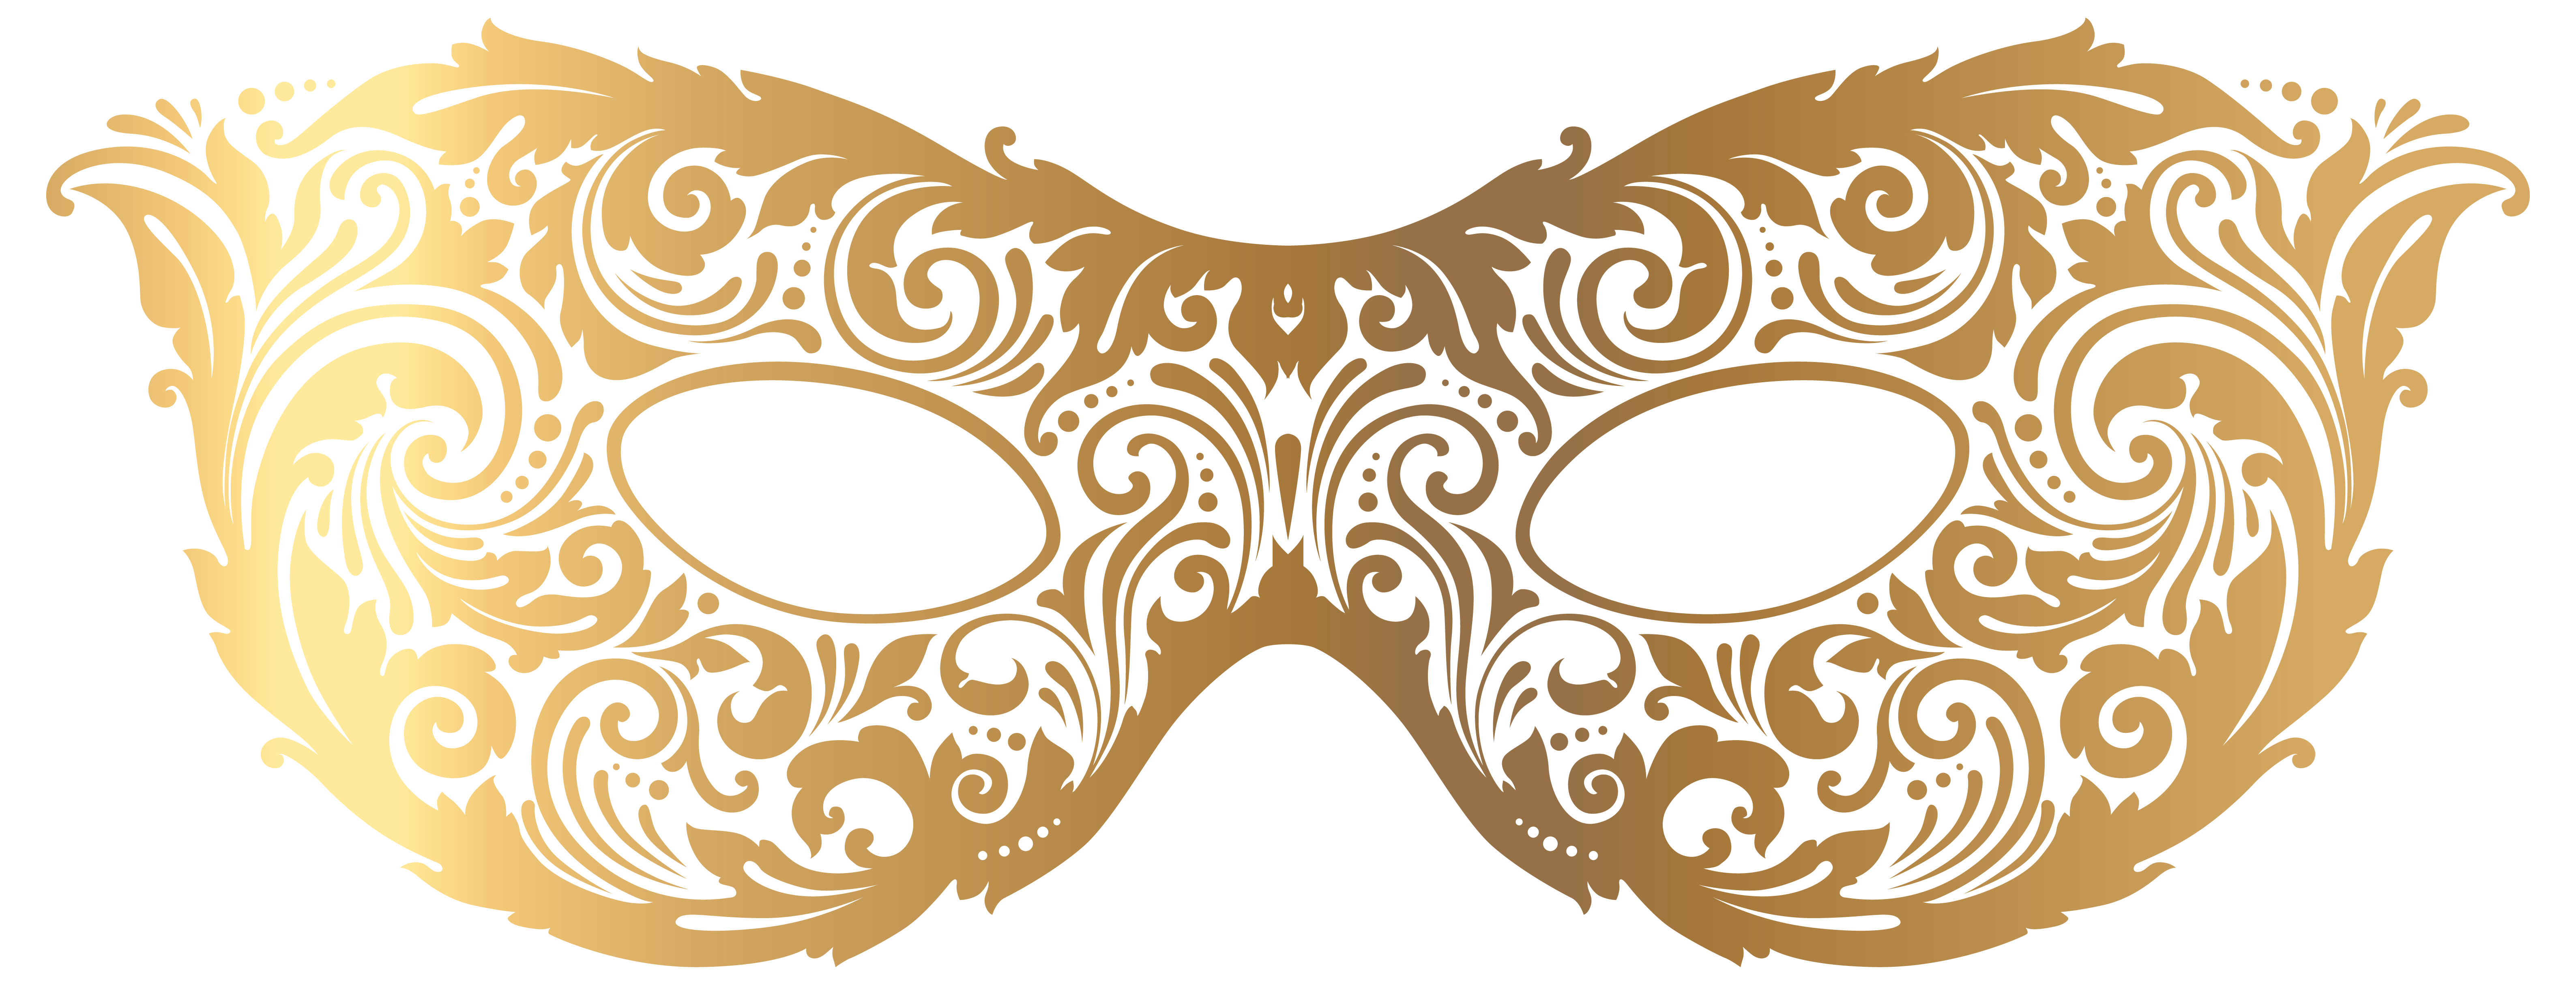 graphic transparent stock  collection of gold. Masquerade clipart golden.